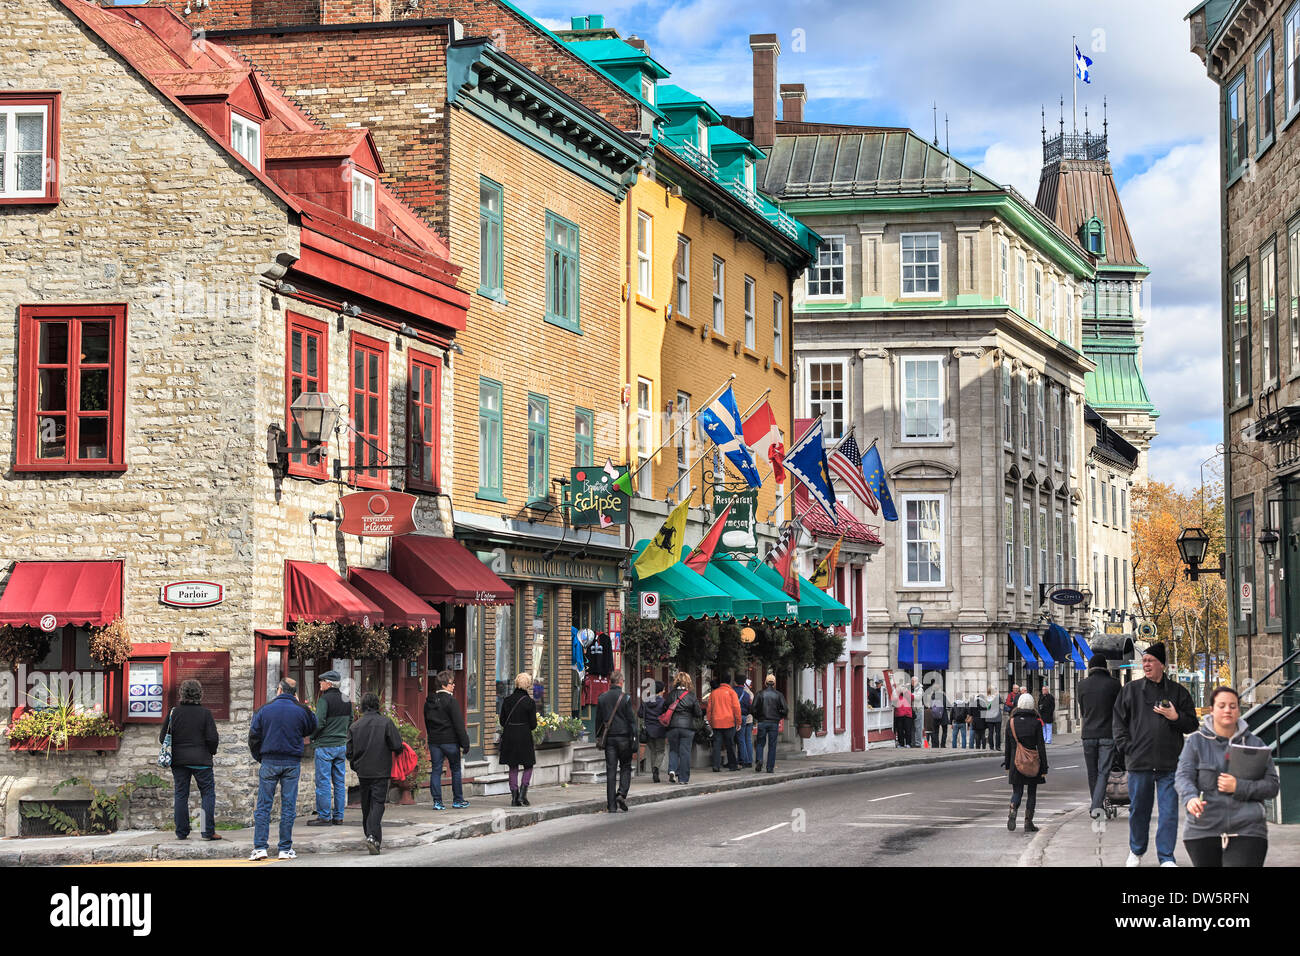 Rue Saint-Louis in the Upper Town area of Old Quebec City, Quebec, Canada - Stock Image